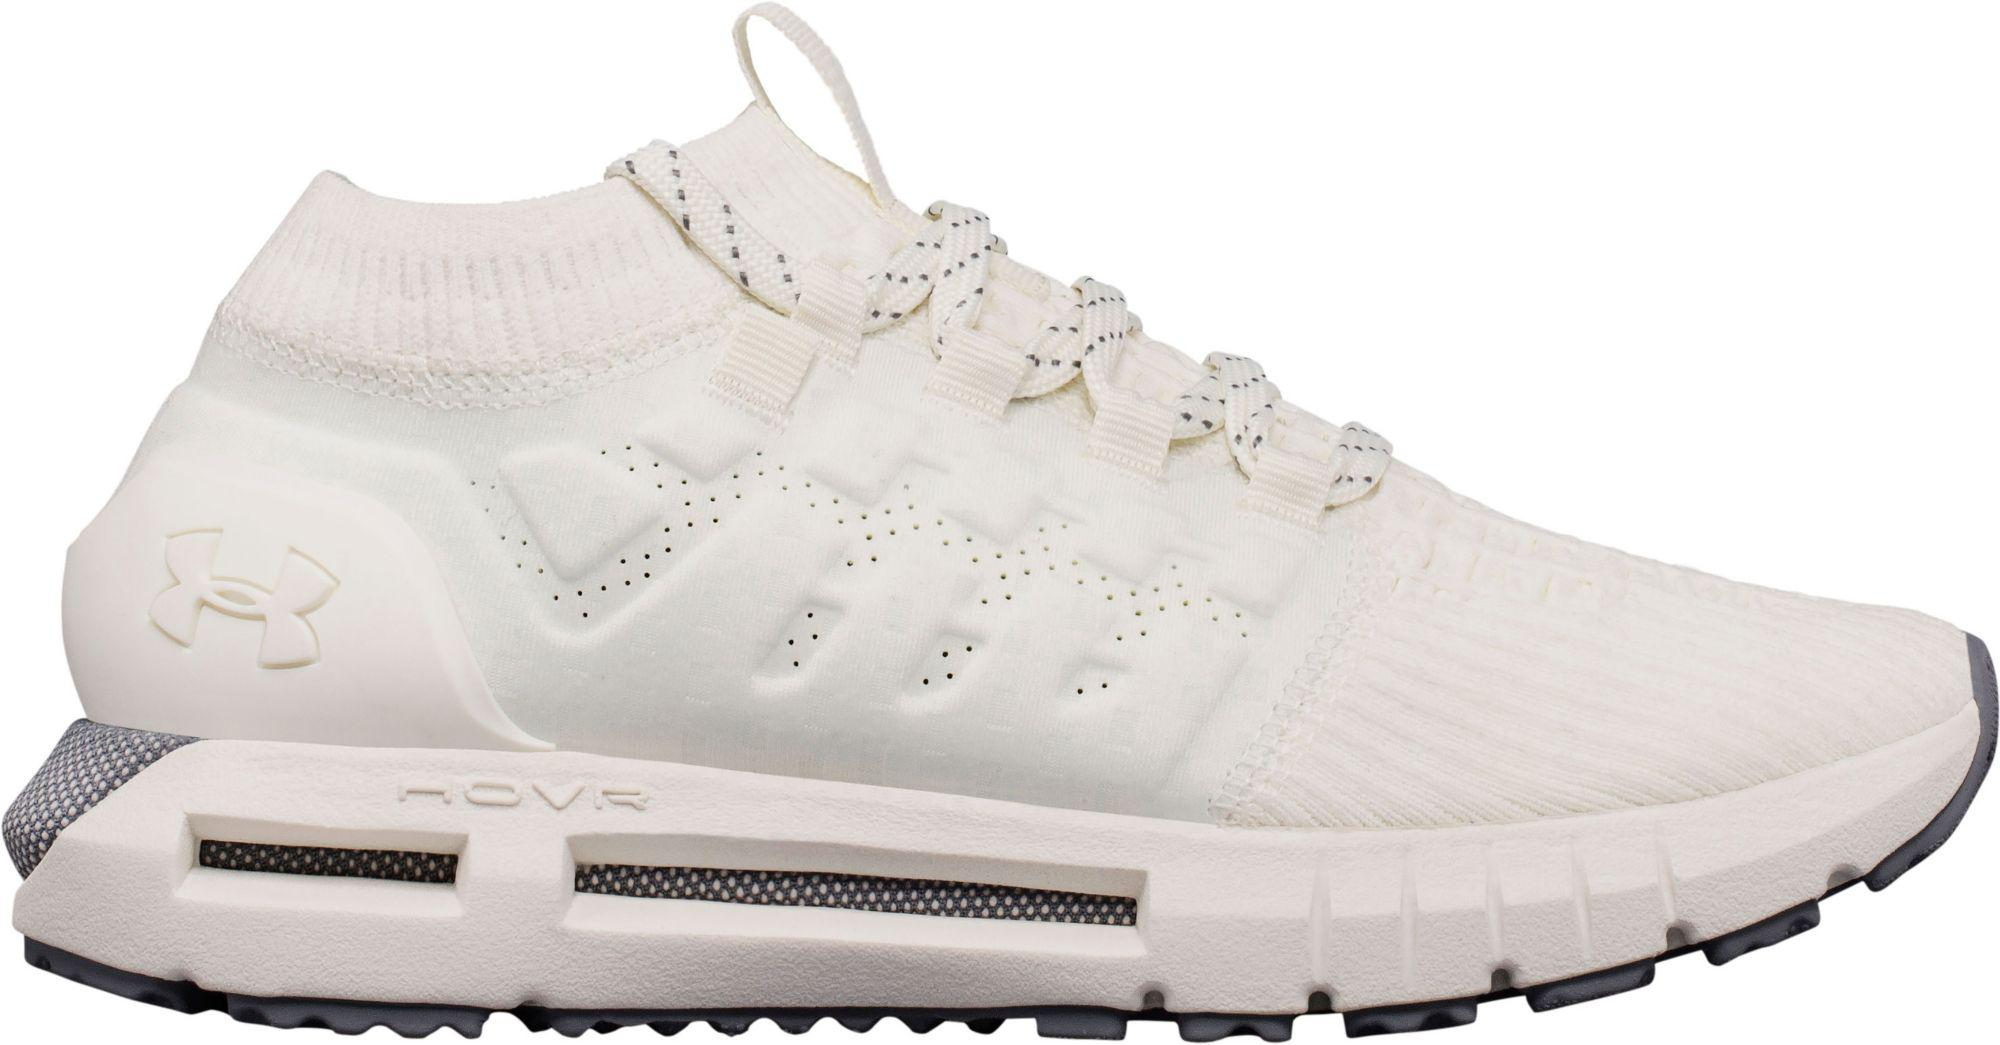 online store 95e21 d3cf2 Lyst - Under Armour Hovr Phantom Connected Running Shoes in ...